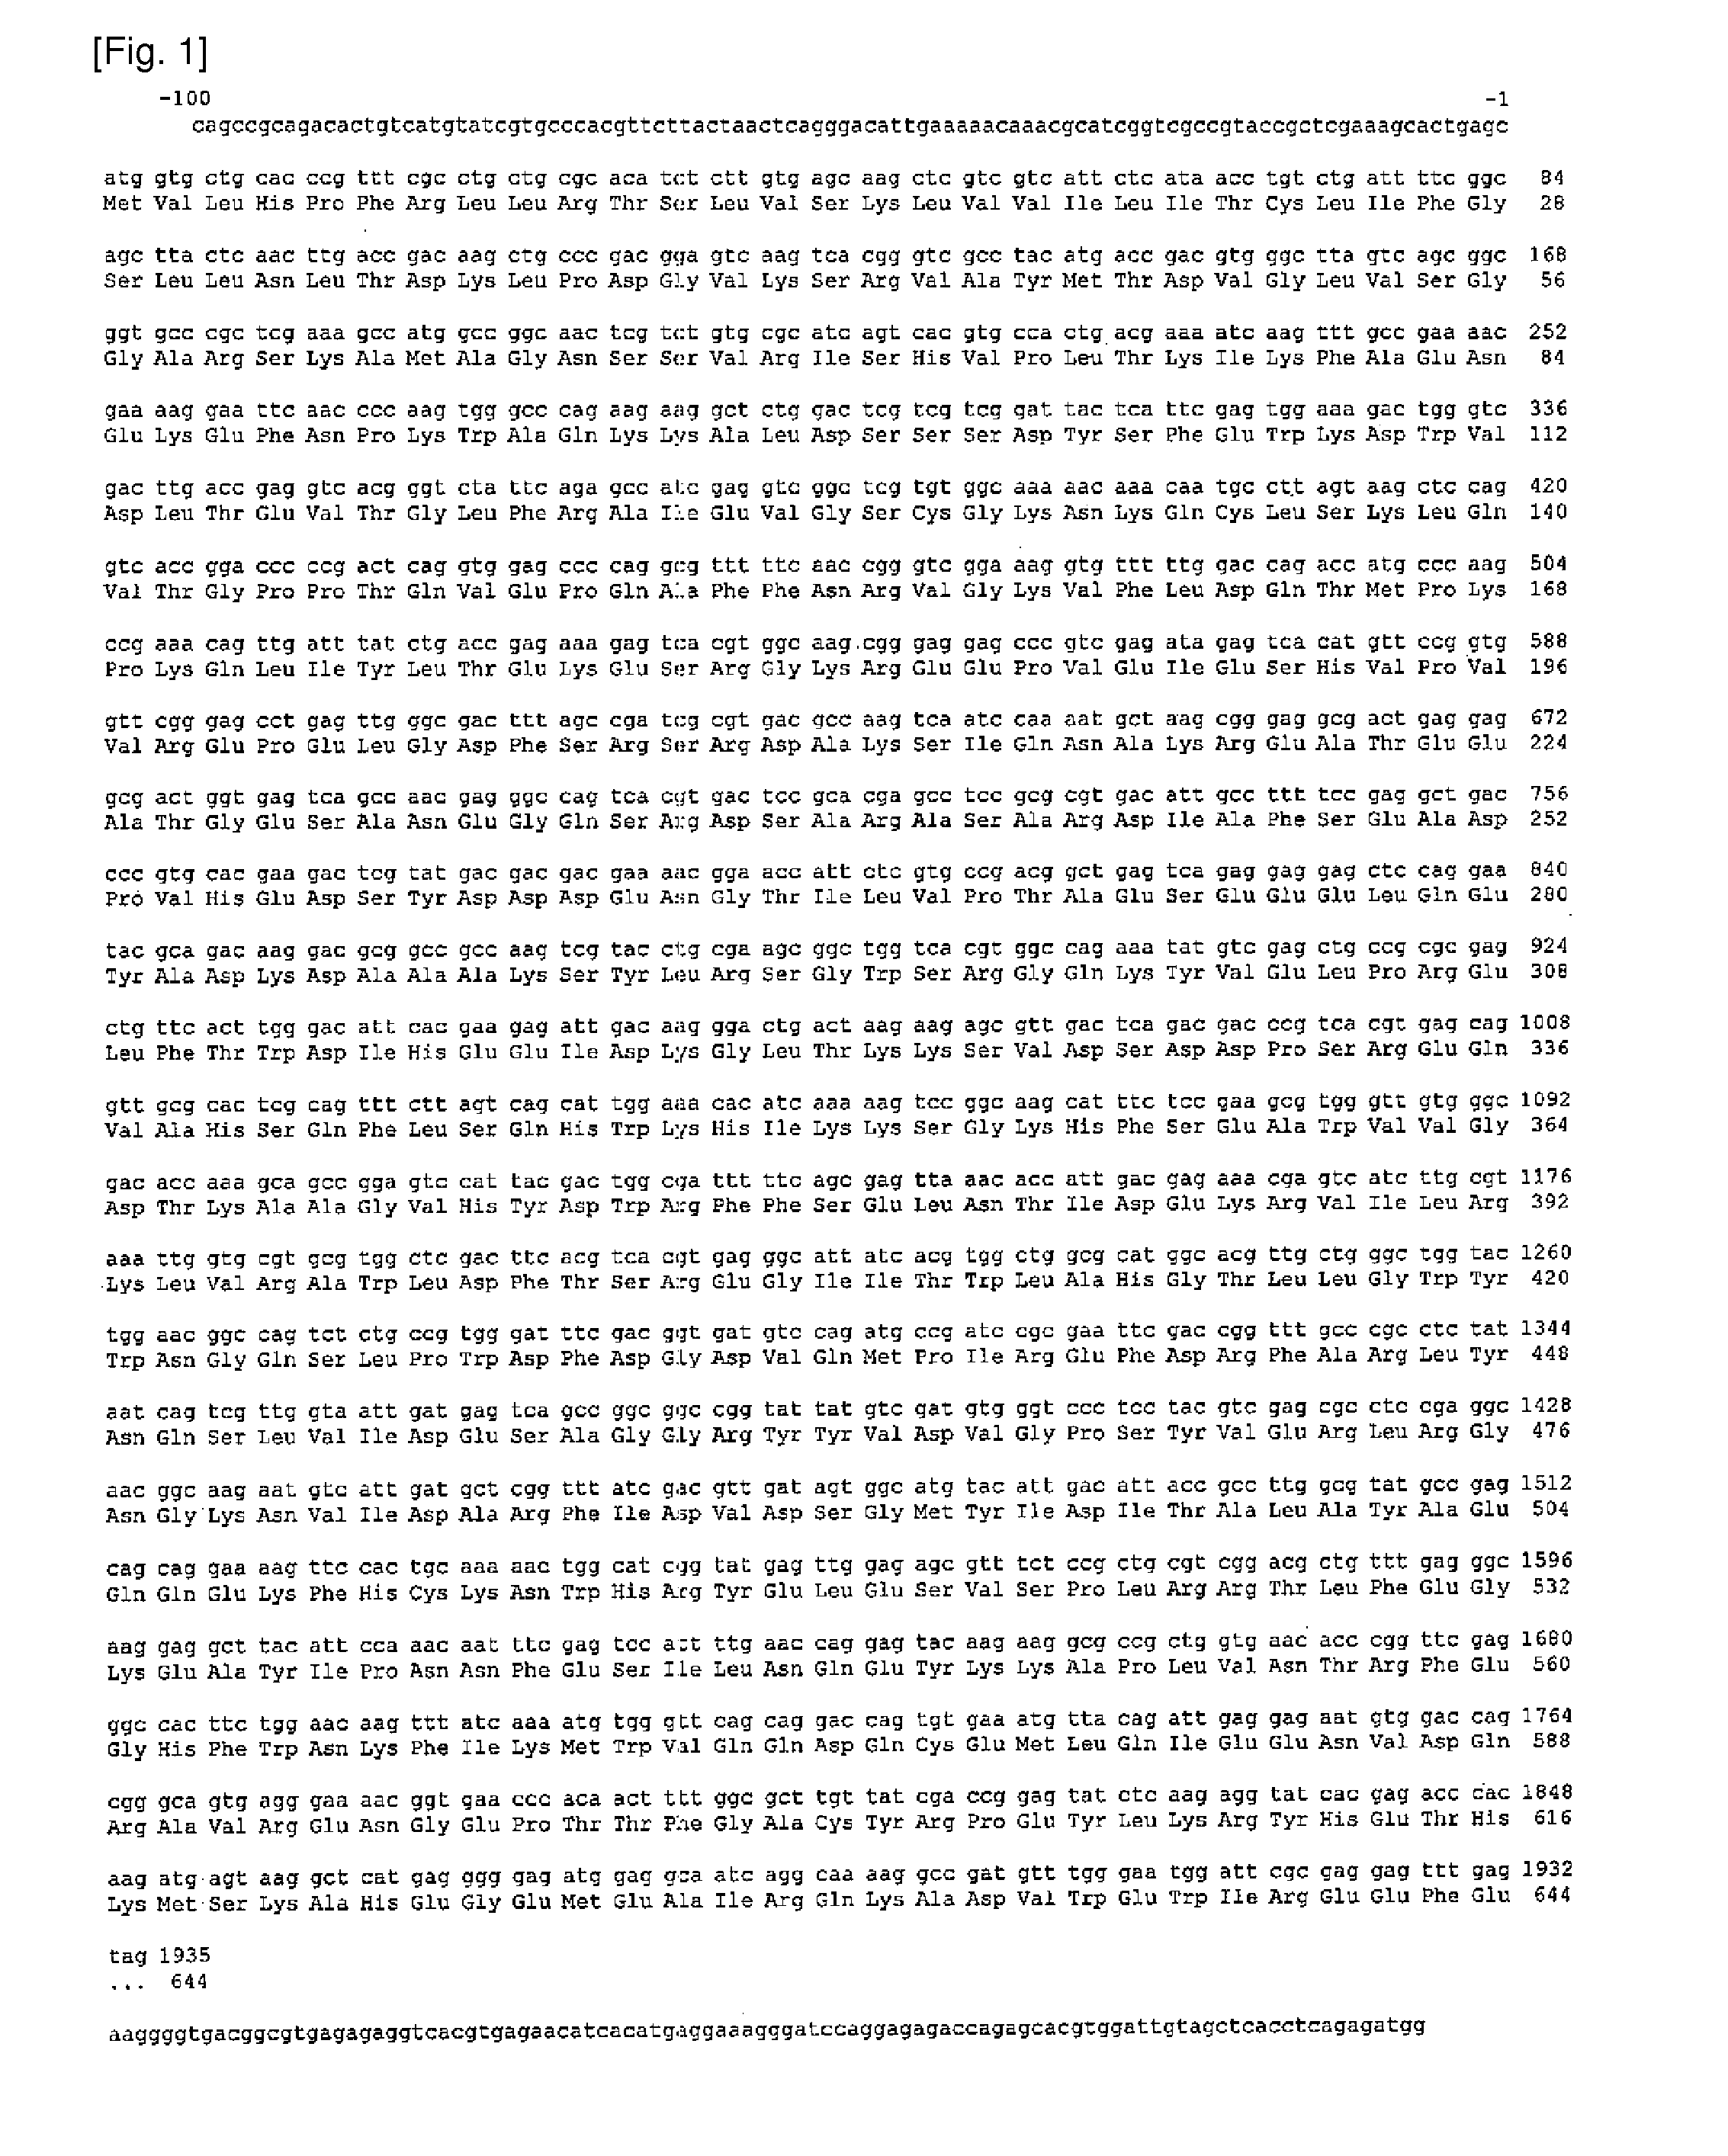 US8003349B2 - YLMPO1 gene derived from